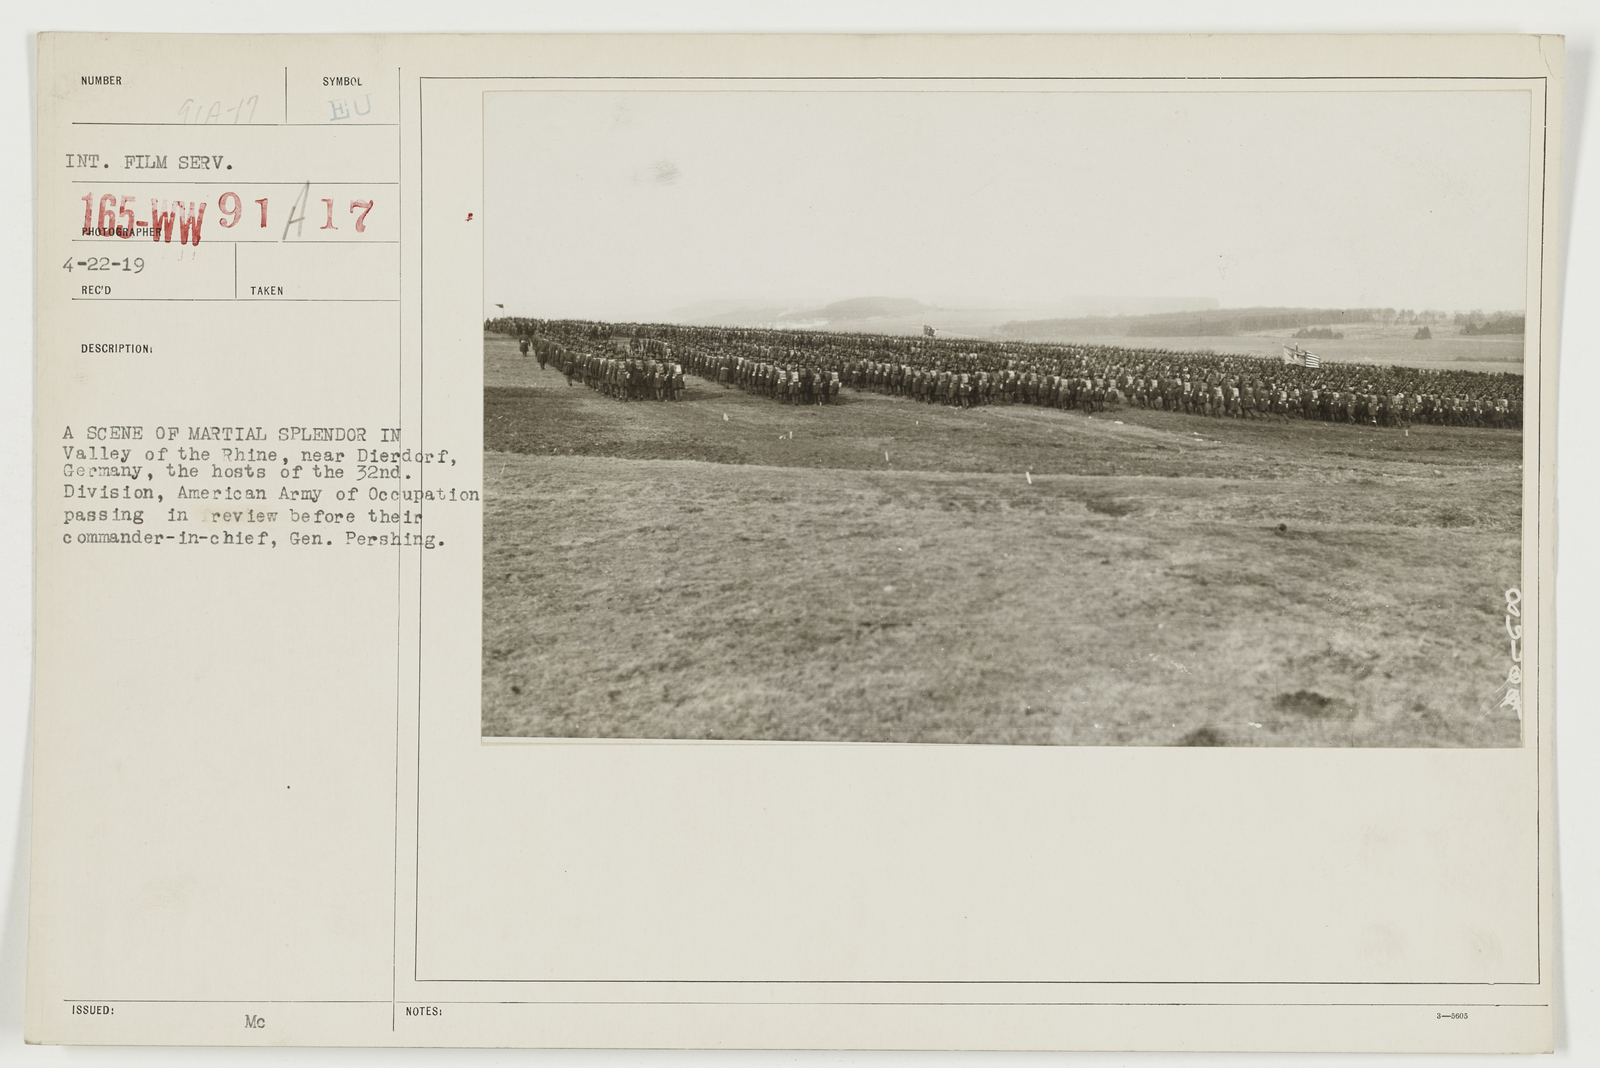 Ceremonies - Review in Theatre of Operations - American Troops - A scene of martial splendor in Valley of the Rhine, near Dierdorf, Germany, the hosts of the 32nd Division